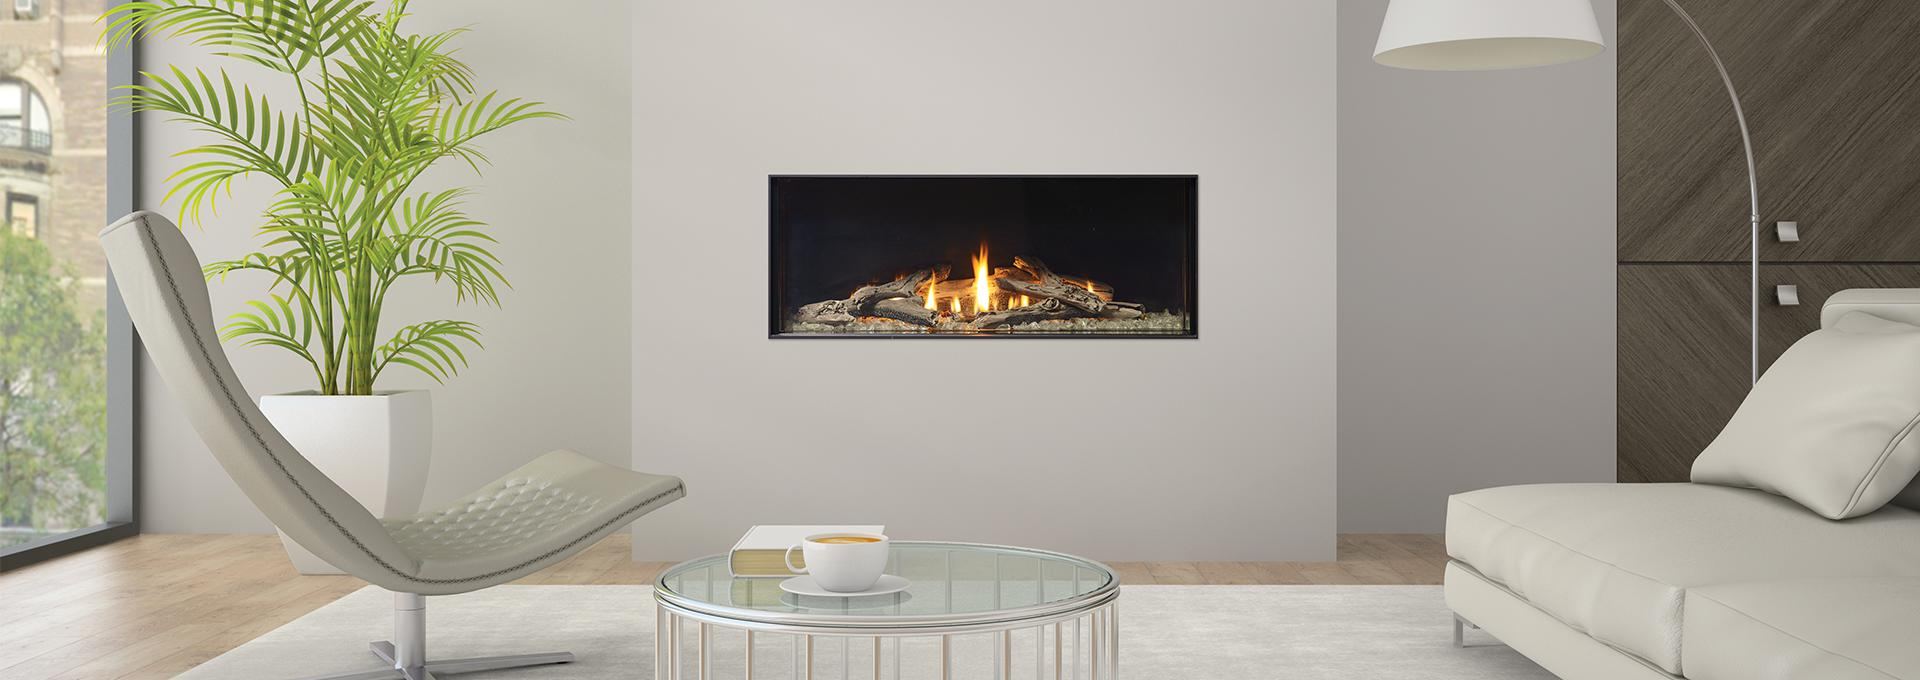 Regency city series new york view 40 modern gas fireplace for Modern gas fireplace price